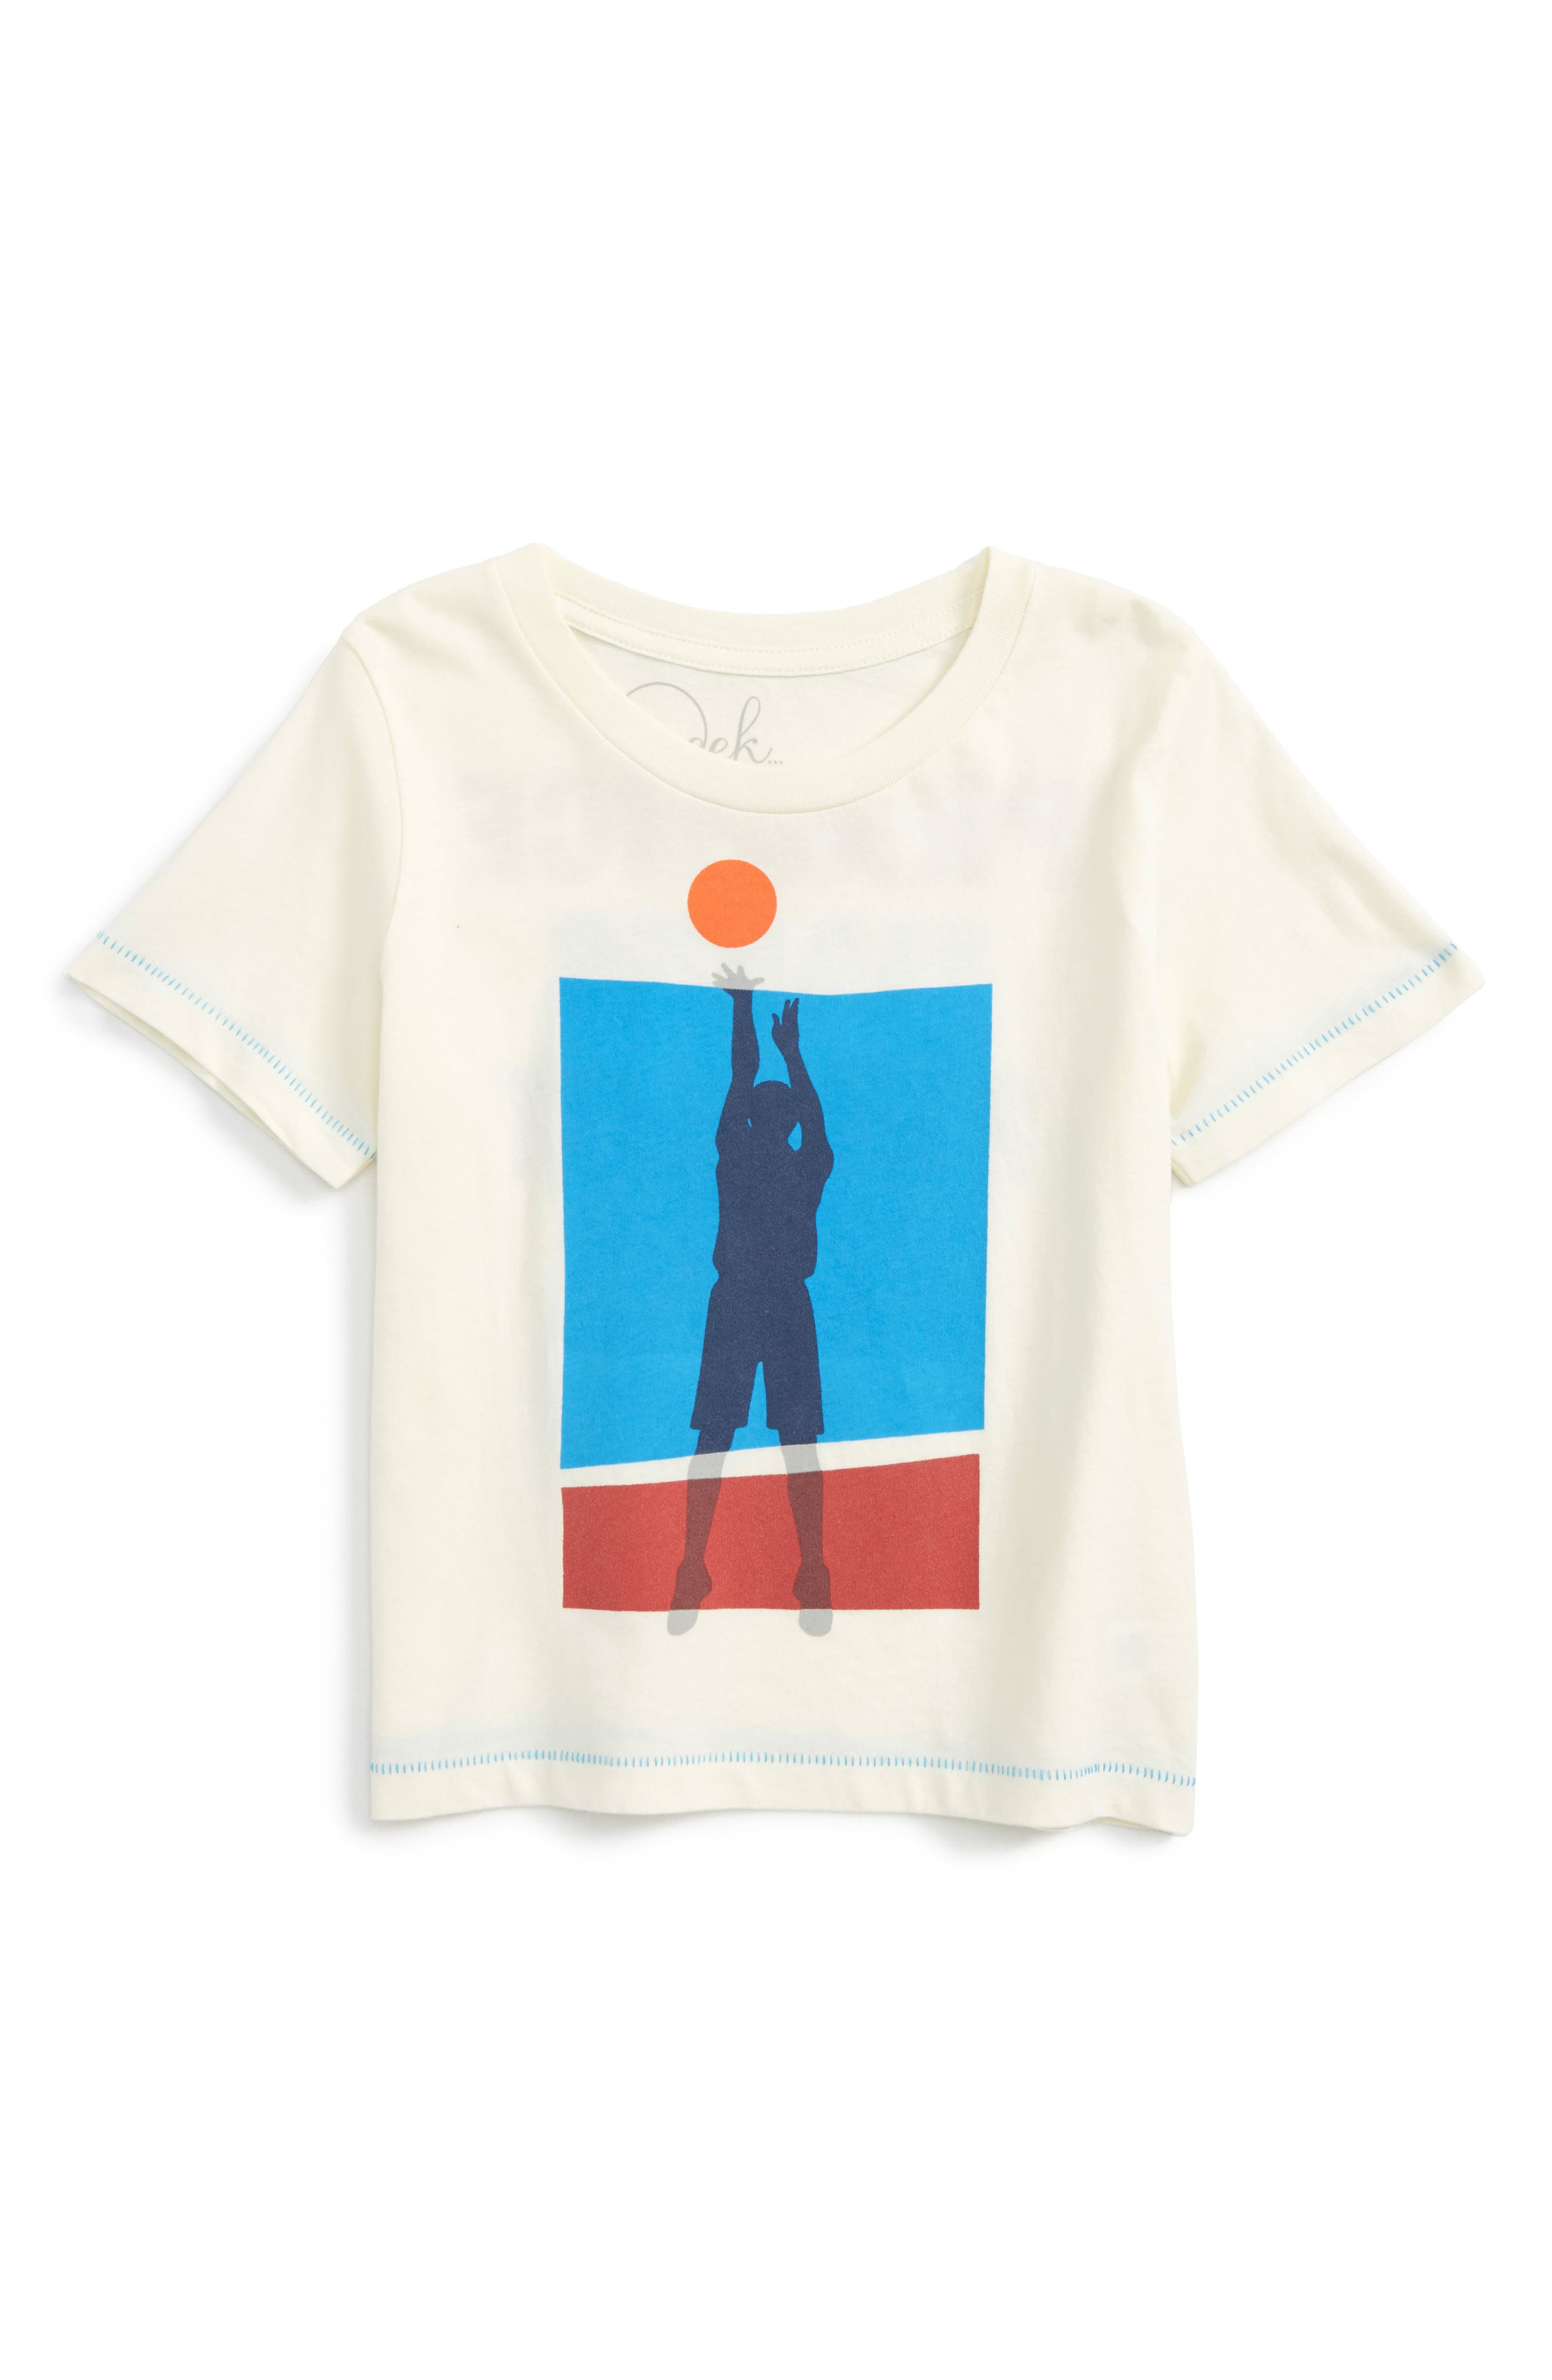 Alternate Image 1 Selected - Peek Basketball Practice T-Shirt (Toddler Boys, Little Boys & Big Boys)